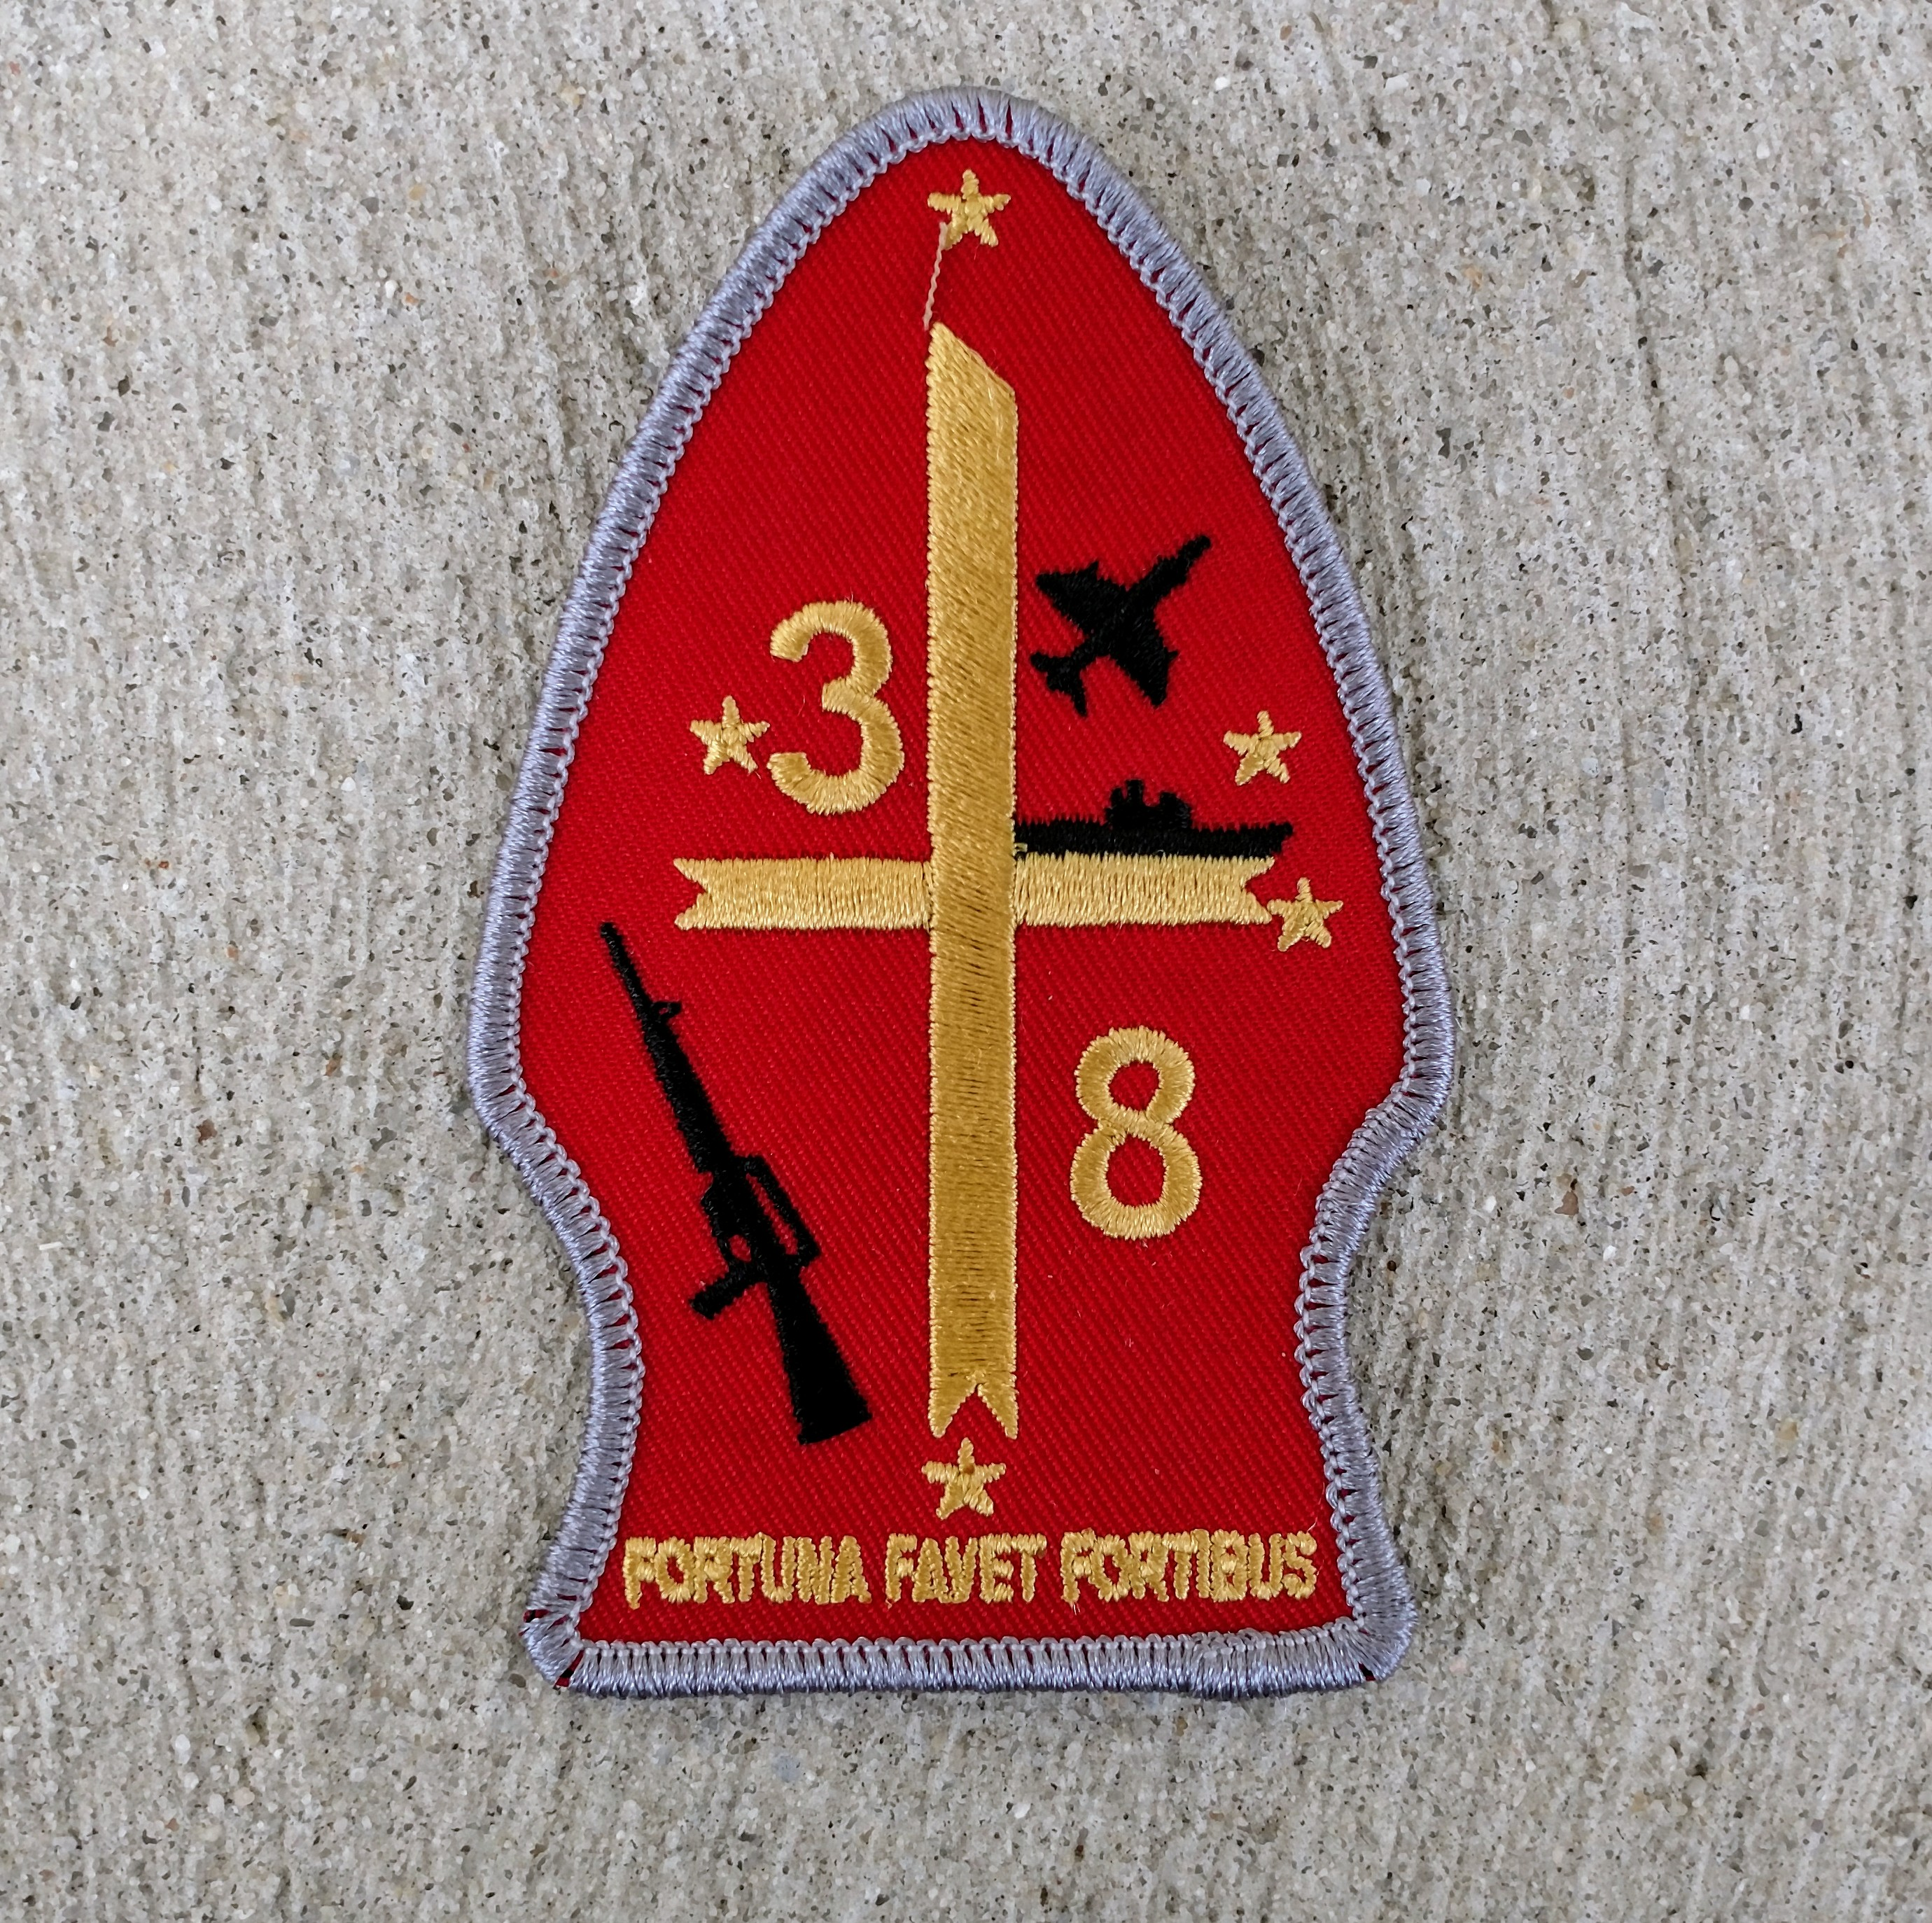 Patch-3/8 Unit